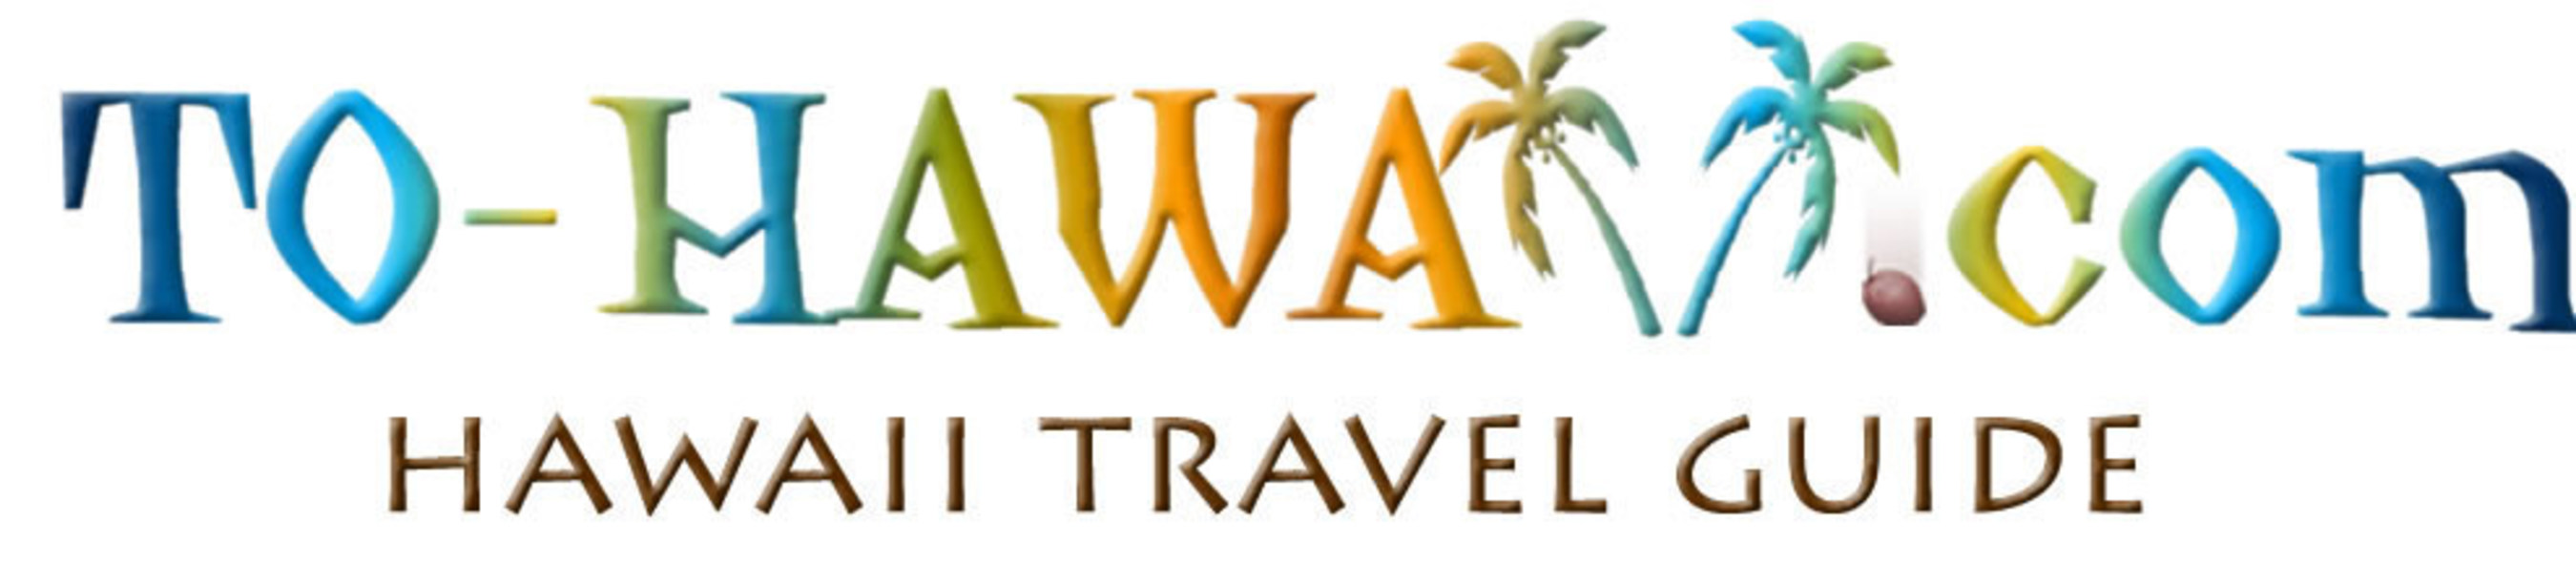 To-Hawaii.com Hawaii Travel Guide Launches Mobile Responsive Site